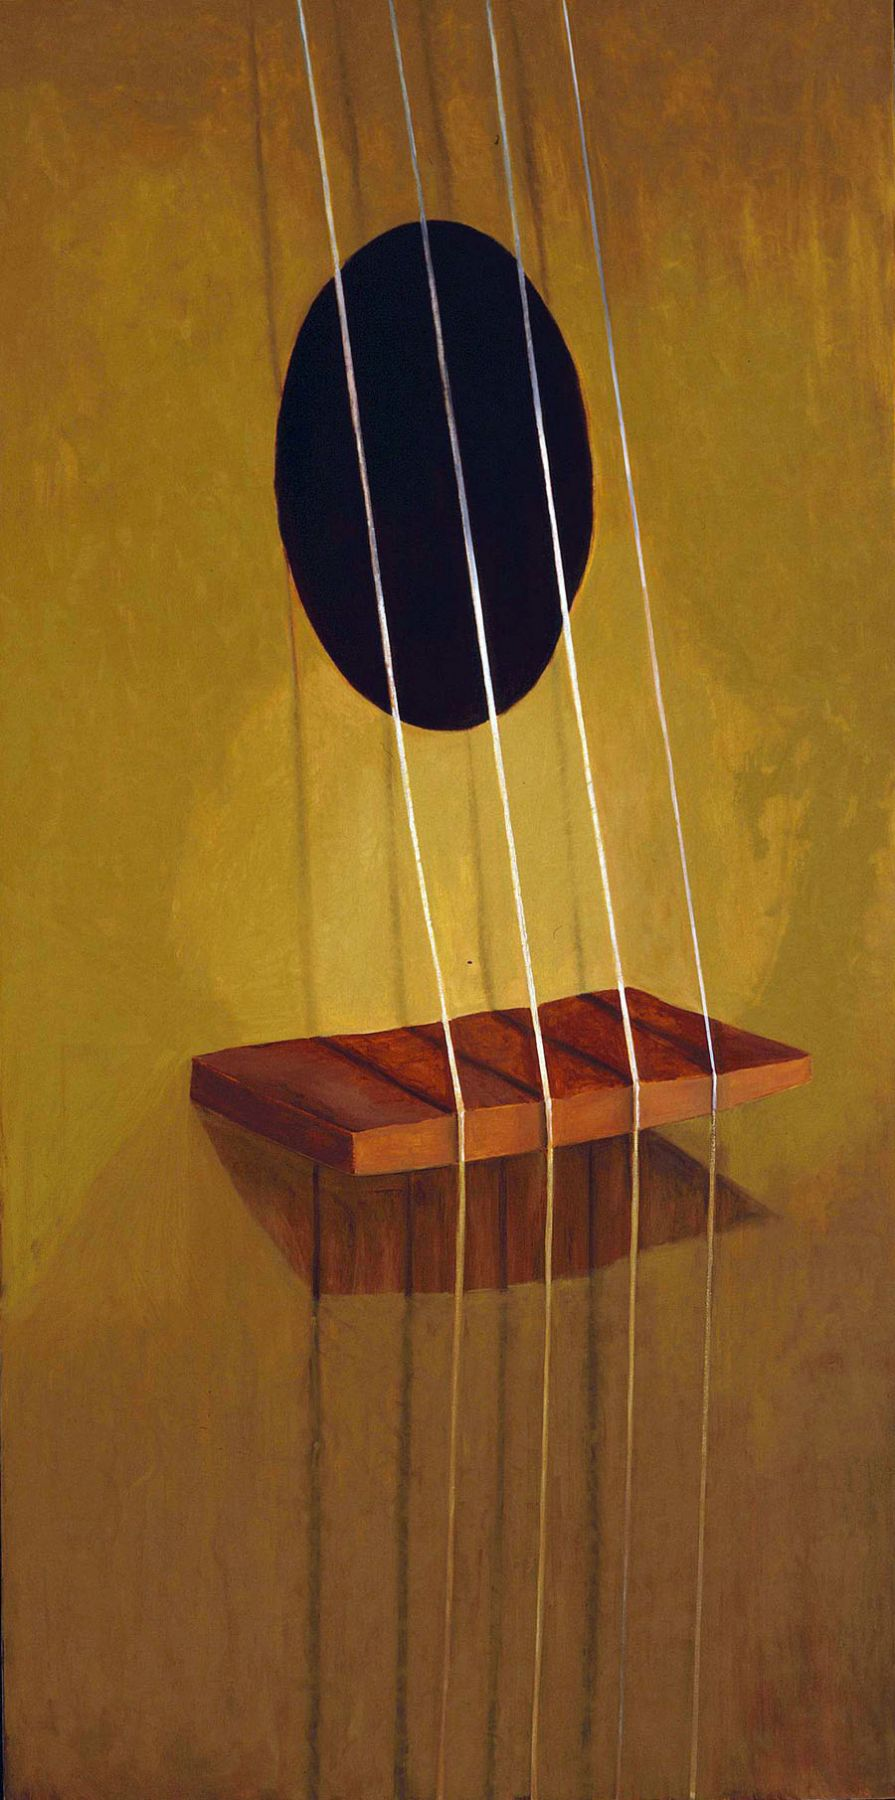 painting of a guitar by jesse chapman